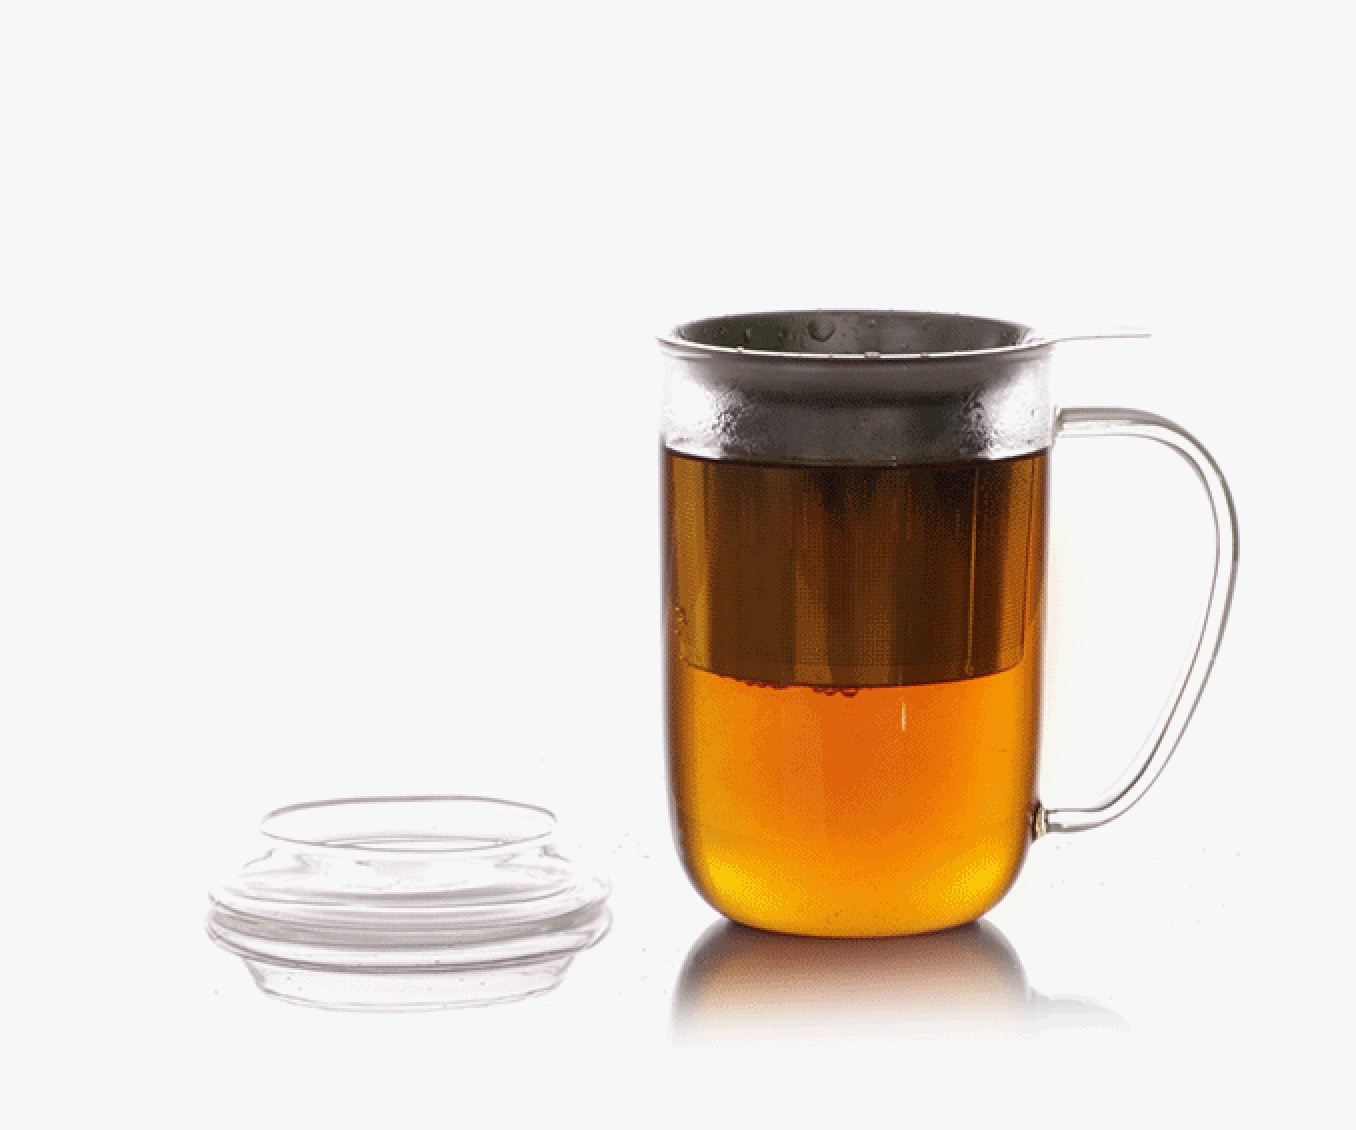 Chai tea infusing in clear 16 oz glass mug with stainless steel tea infuser.